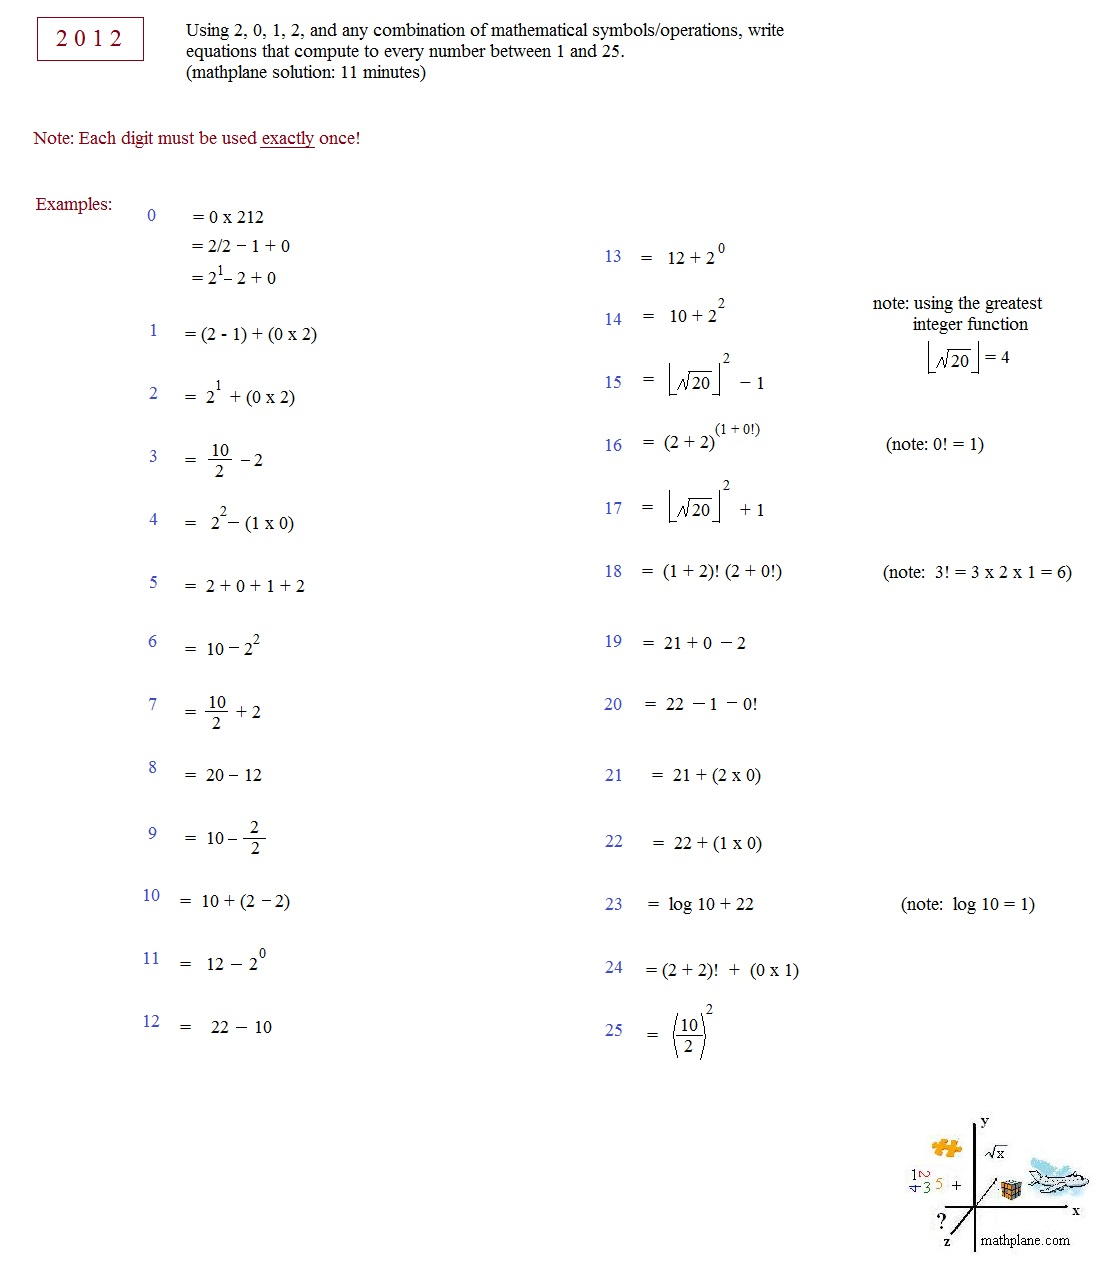 Math symbols geometry images symbol and sign ideas 1 25 symbols of geometry worksheet answers image collections math plane 2012 puzzle 2012 number puzzle biocorpaavc Gallery